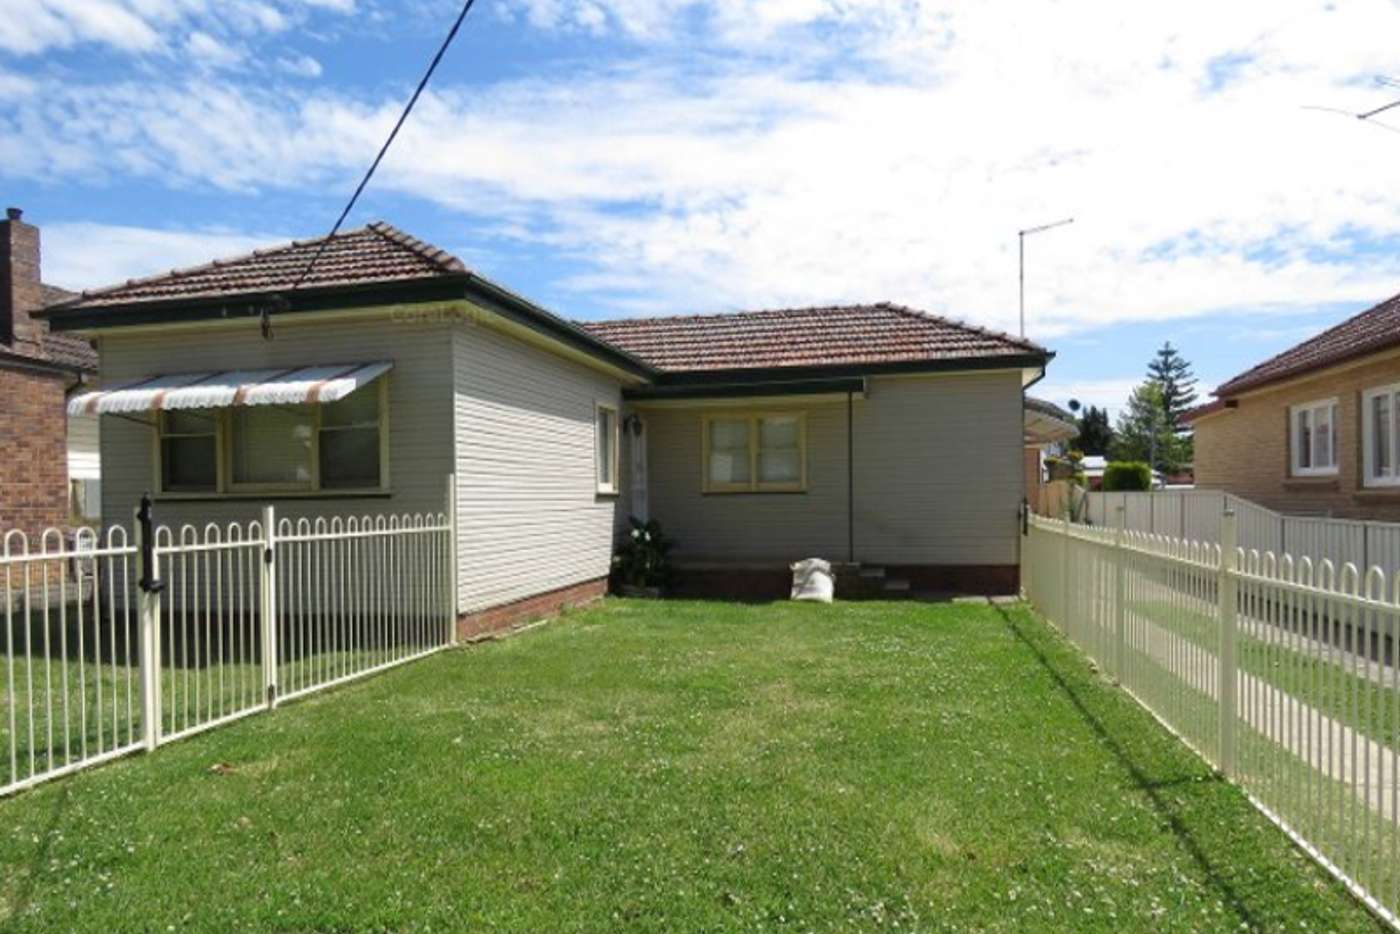 Main view of Homely apartment listing, 14 Melody Street, Toongabbie NSW 2146